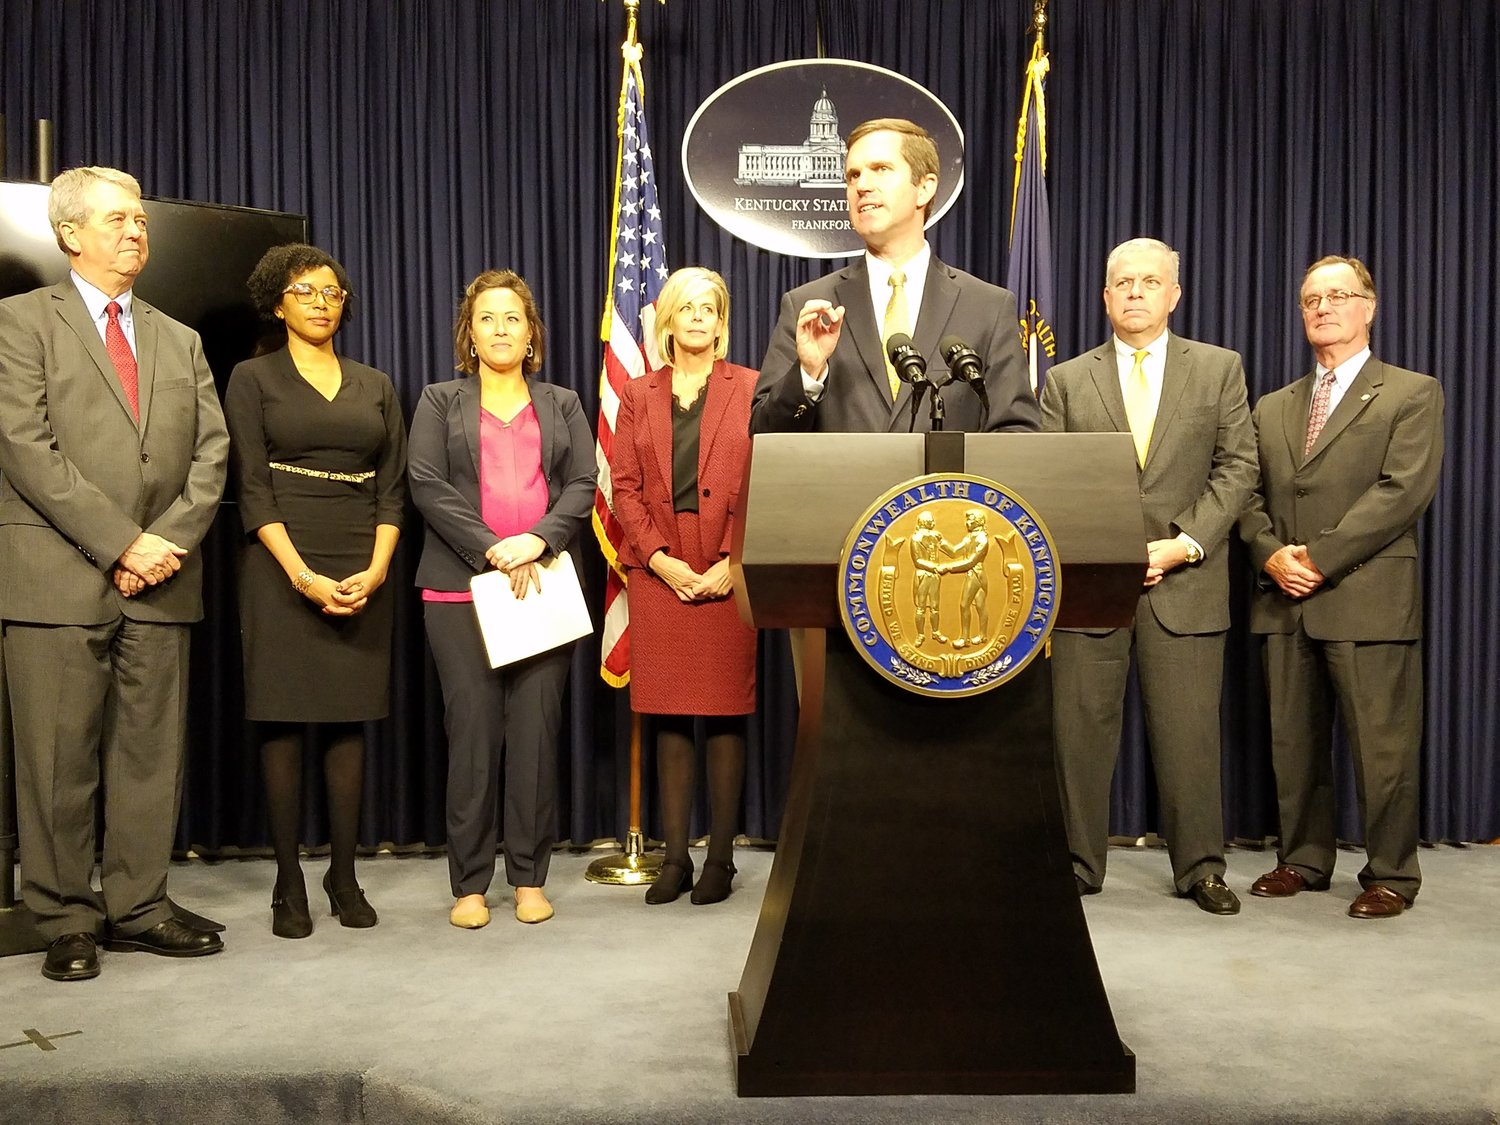 Gov.-elect Andy Beshear made several high-level appointments on Friday. From left, Dorset Ridley, director of Legislative Services; La Tasha Buckner, who will add chief of staff to her other position as general counsel; Lt. Gov.-elect Jacqueline Coleman; Mike Berry, Tourism, Arts and Heritage Cabinet Secretary; and Tom Miller, Revenue Commissioner.  Not pictured are John Hicks, State Budget Director, and Susan Rieber, Lt. Gov-elect Coleman's Chief of Staff. (Kentucky Today/Tom Latek)